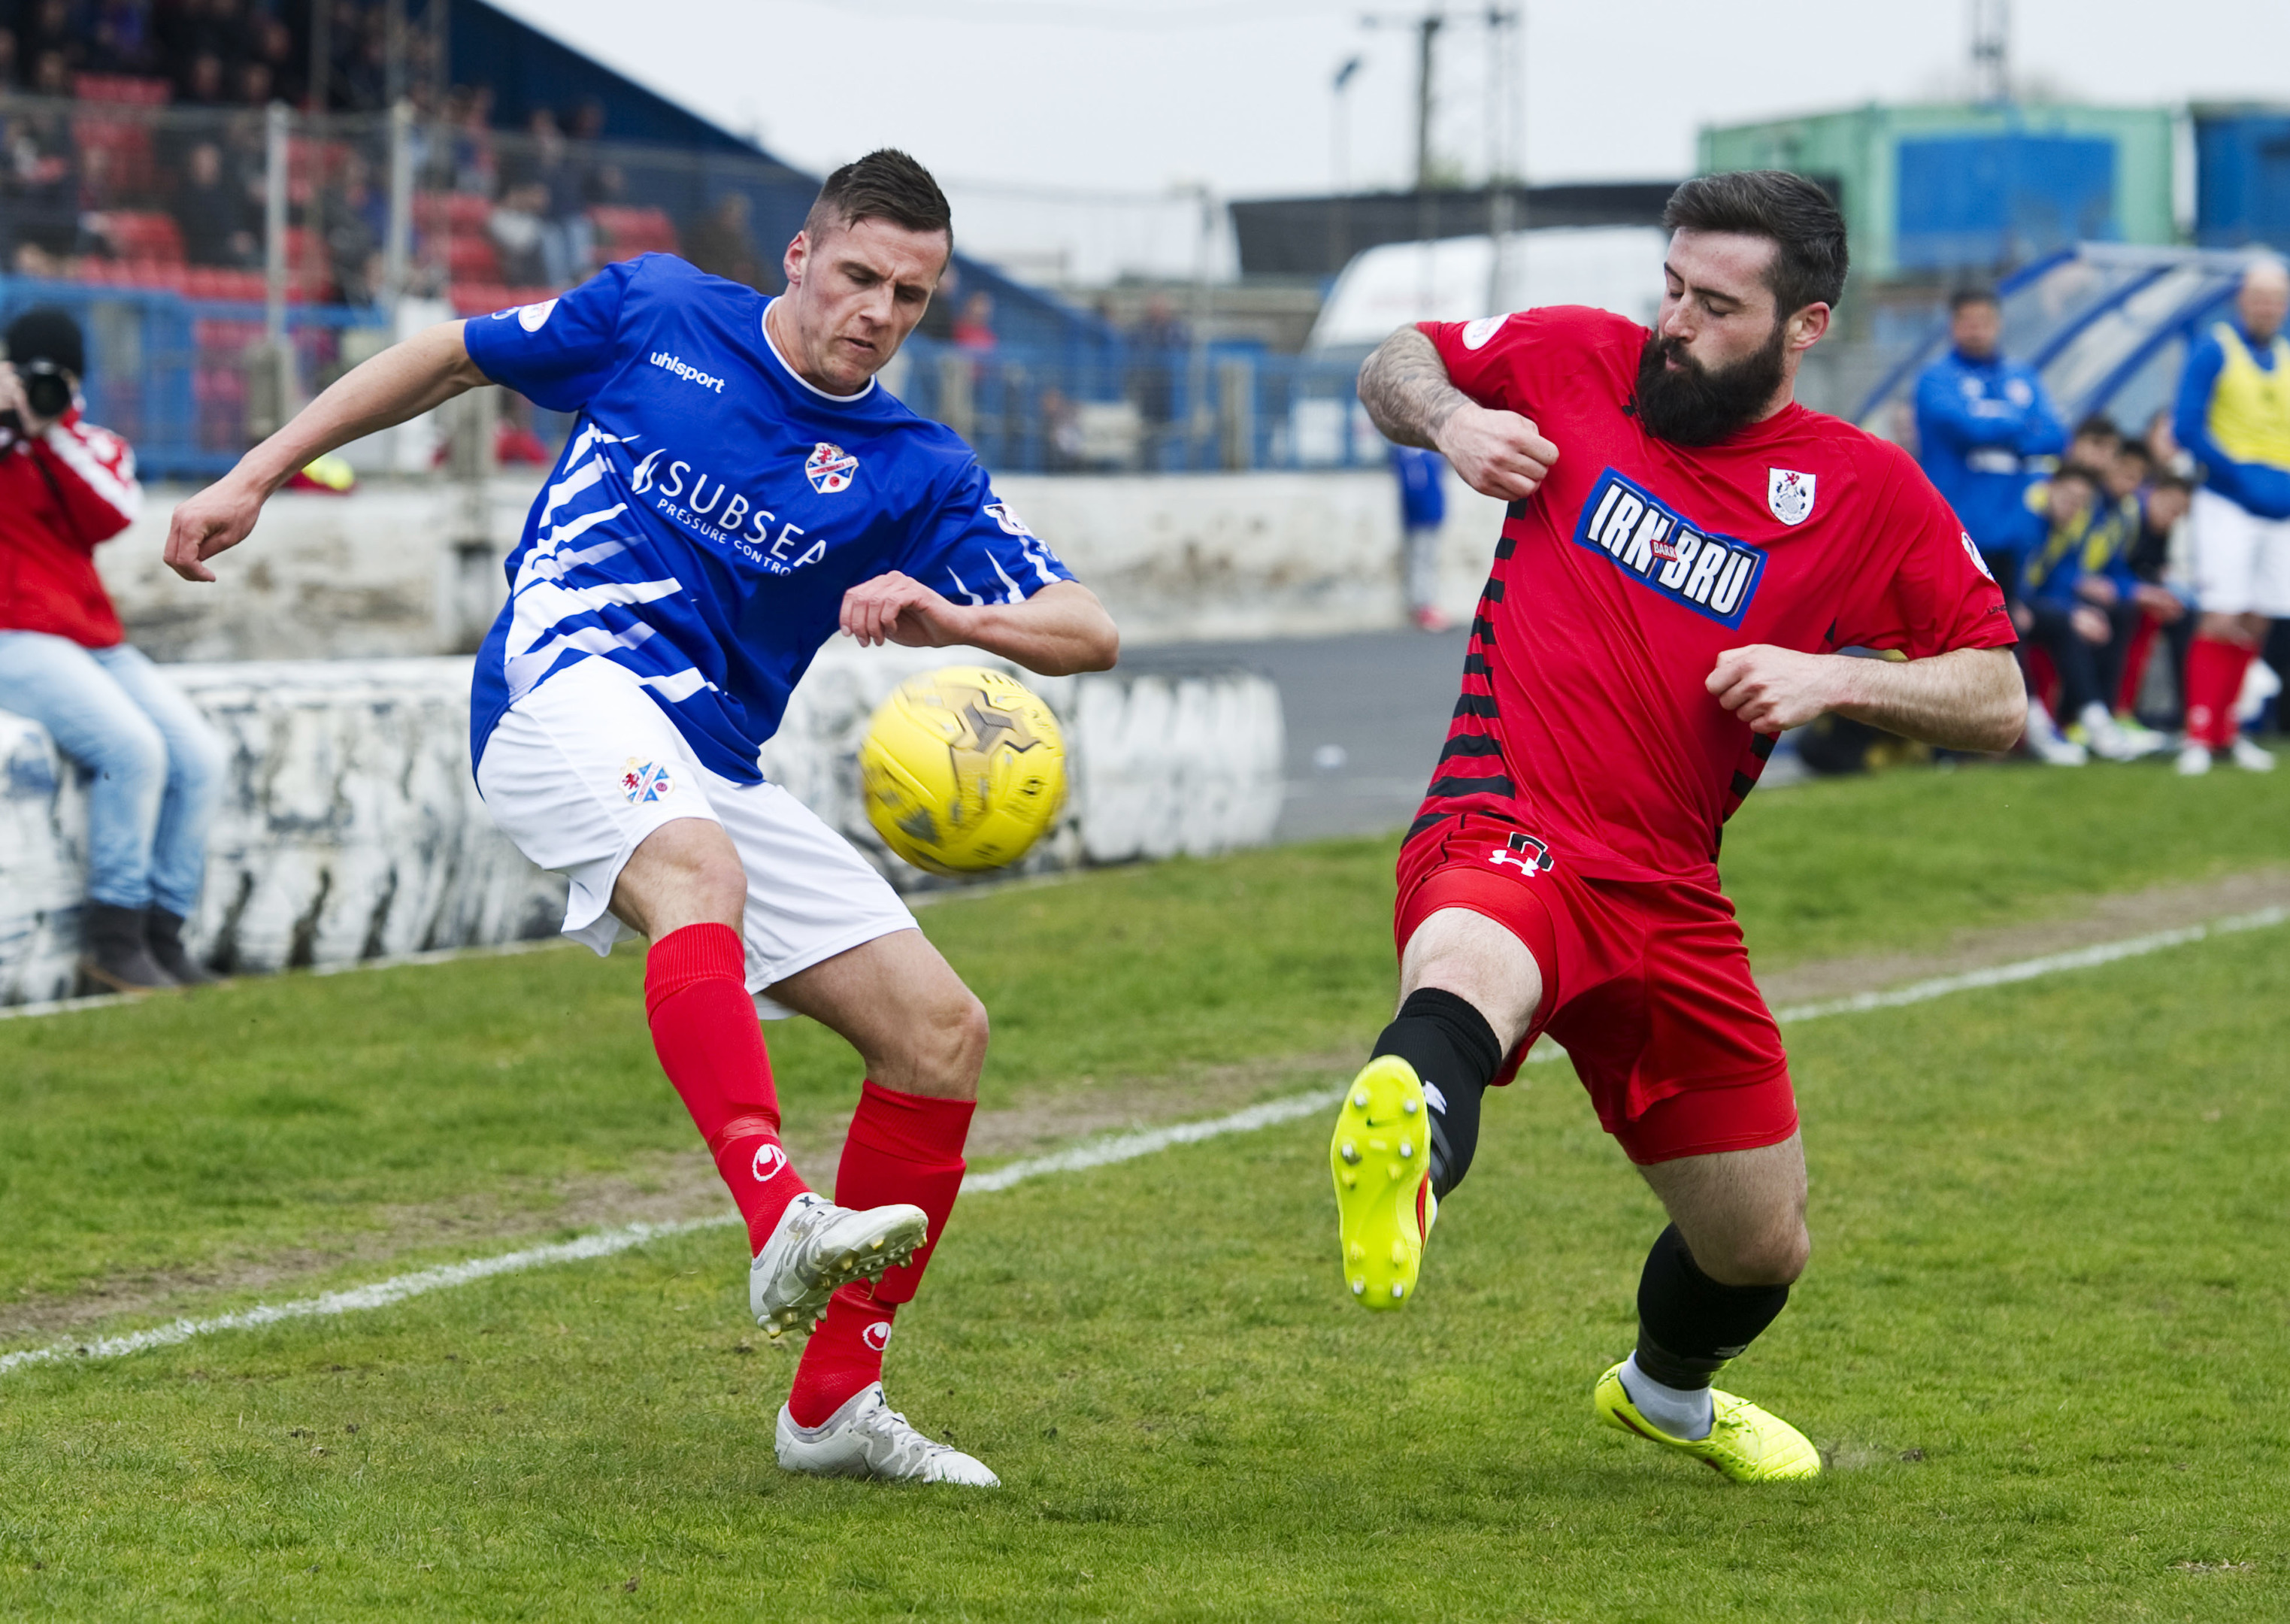 Cowdenbeath's Craig Johnstone (left) and Bryan Wharton of Queens Park. Seaon tickets for The Blue Brazil are the cheapest in Courier Country!